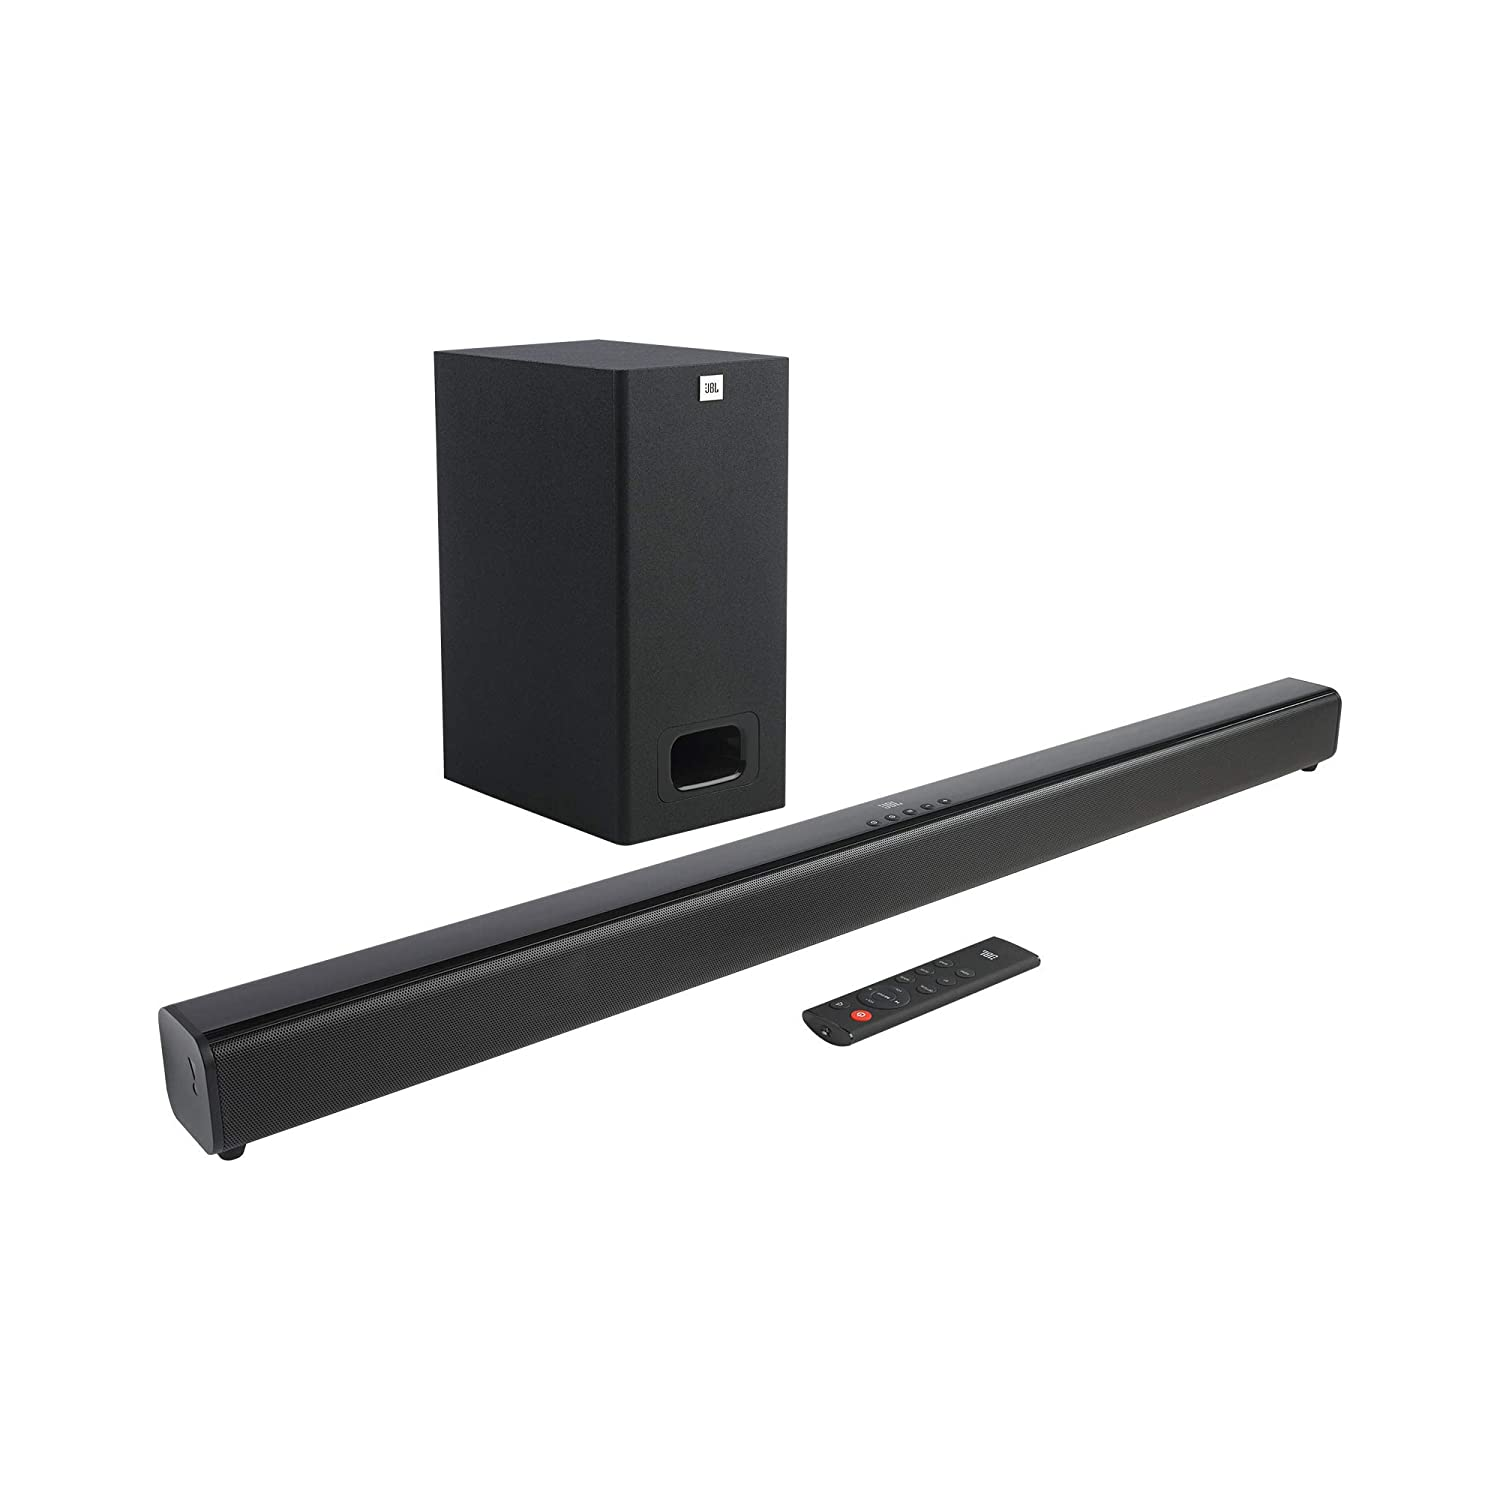 JBL Cinema SB 231 2.1 Channel Soundbar with Wired Subwoofer